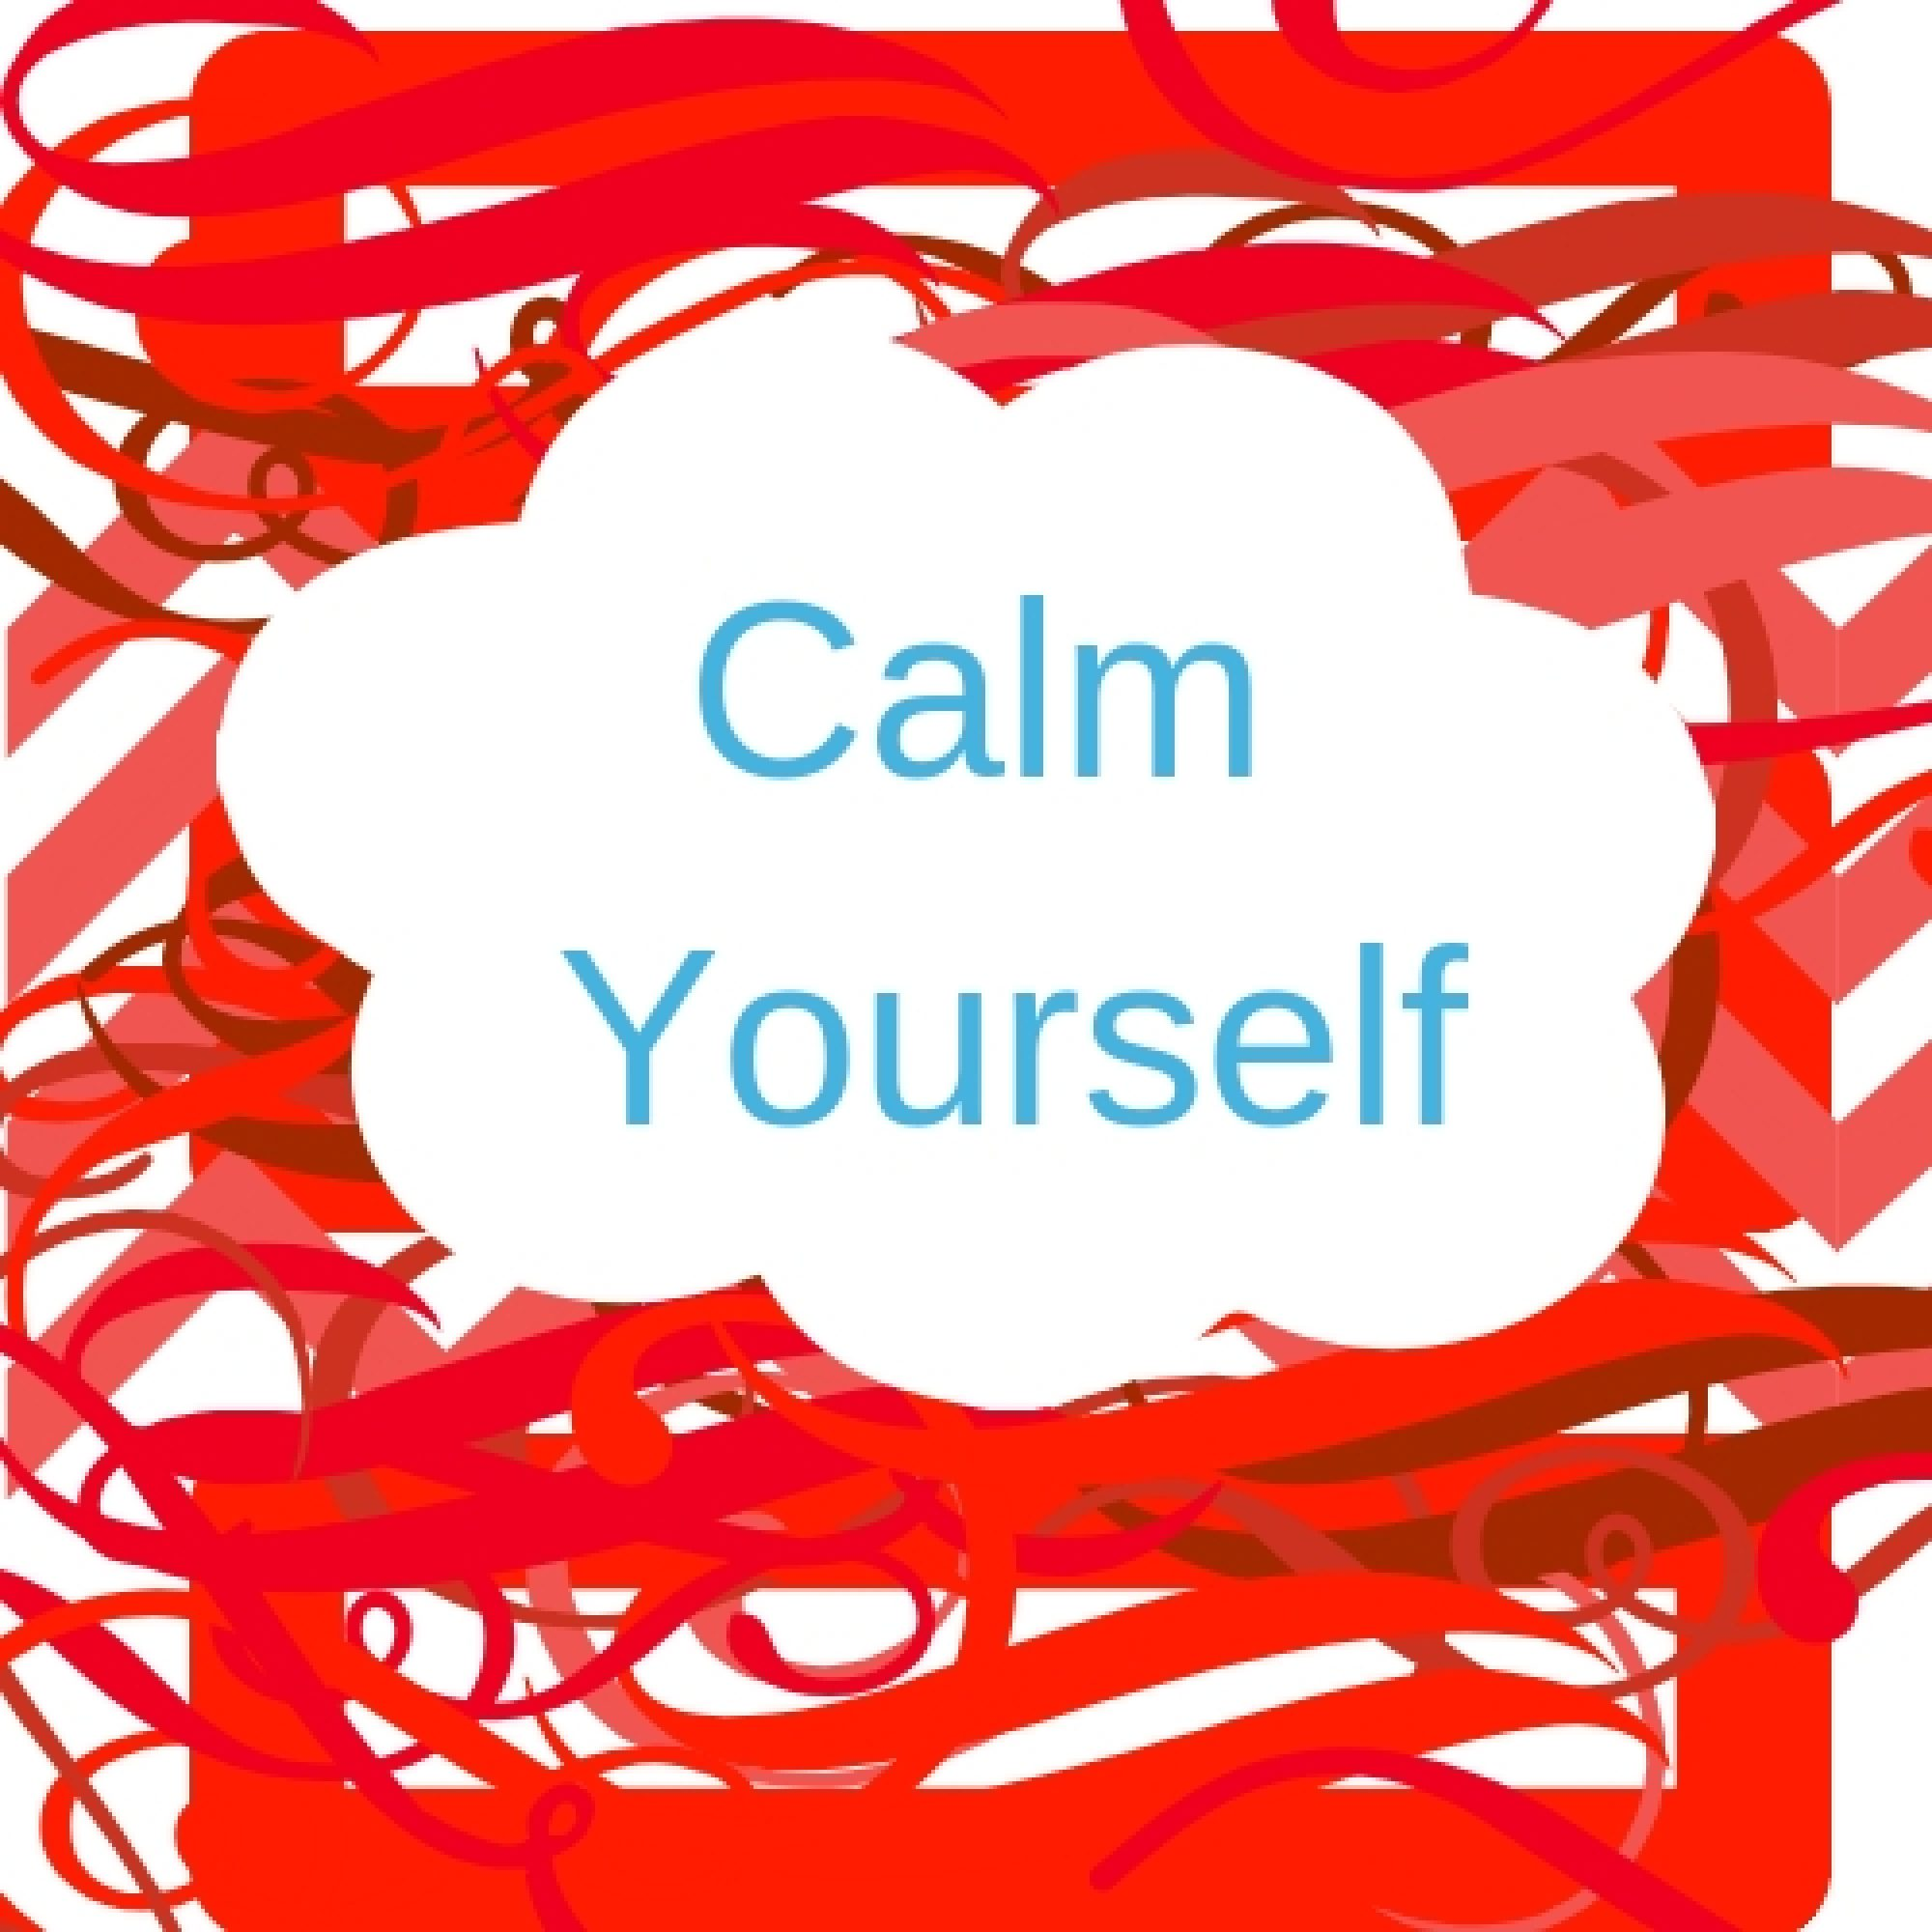 Calm yourself